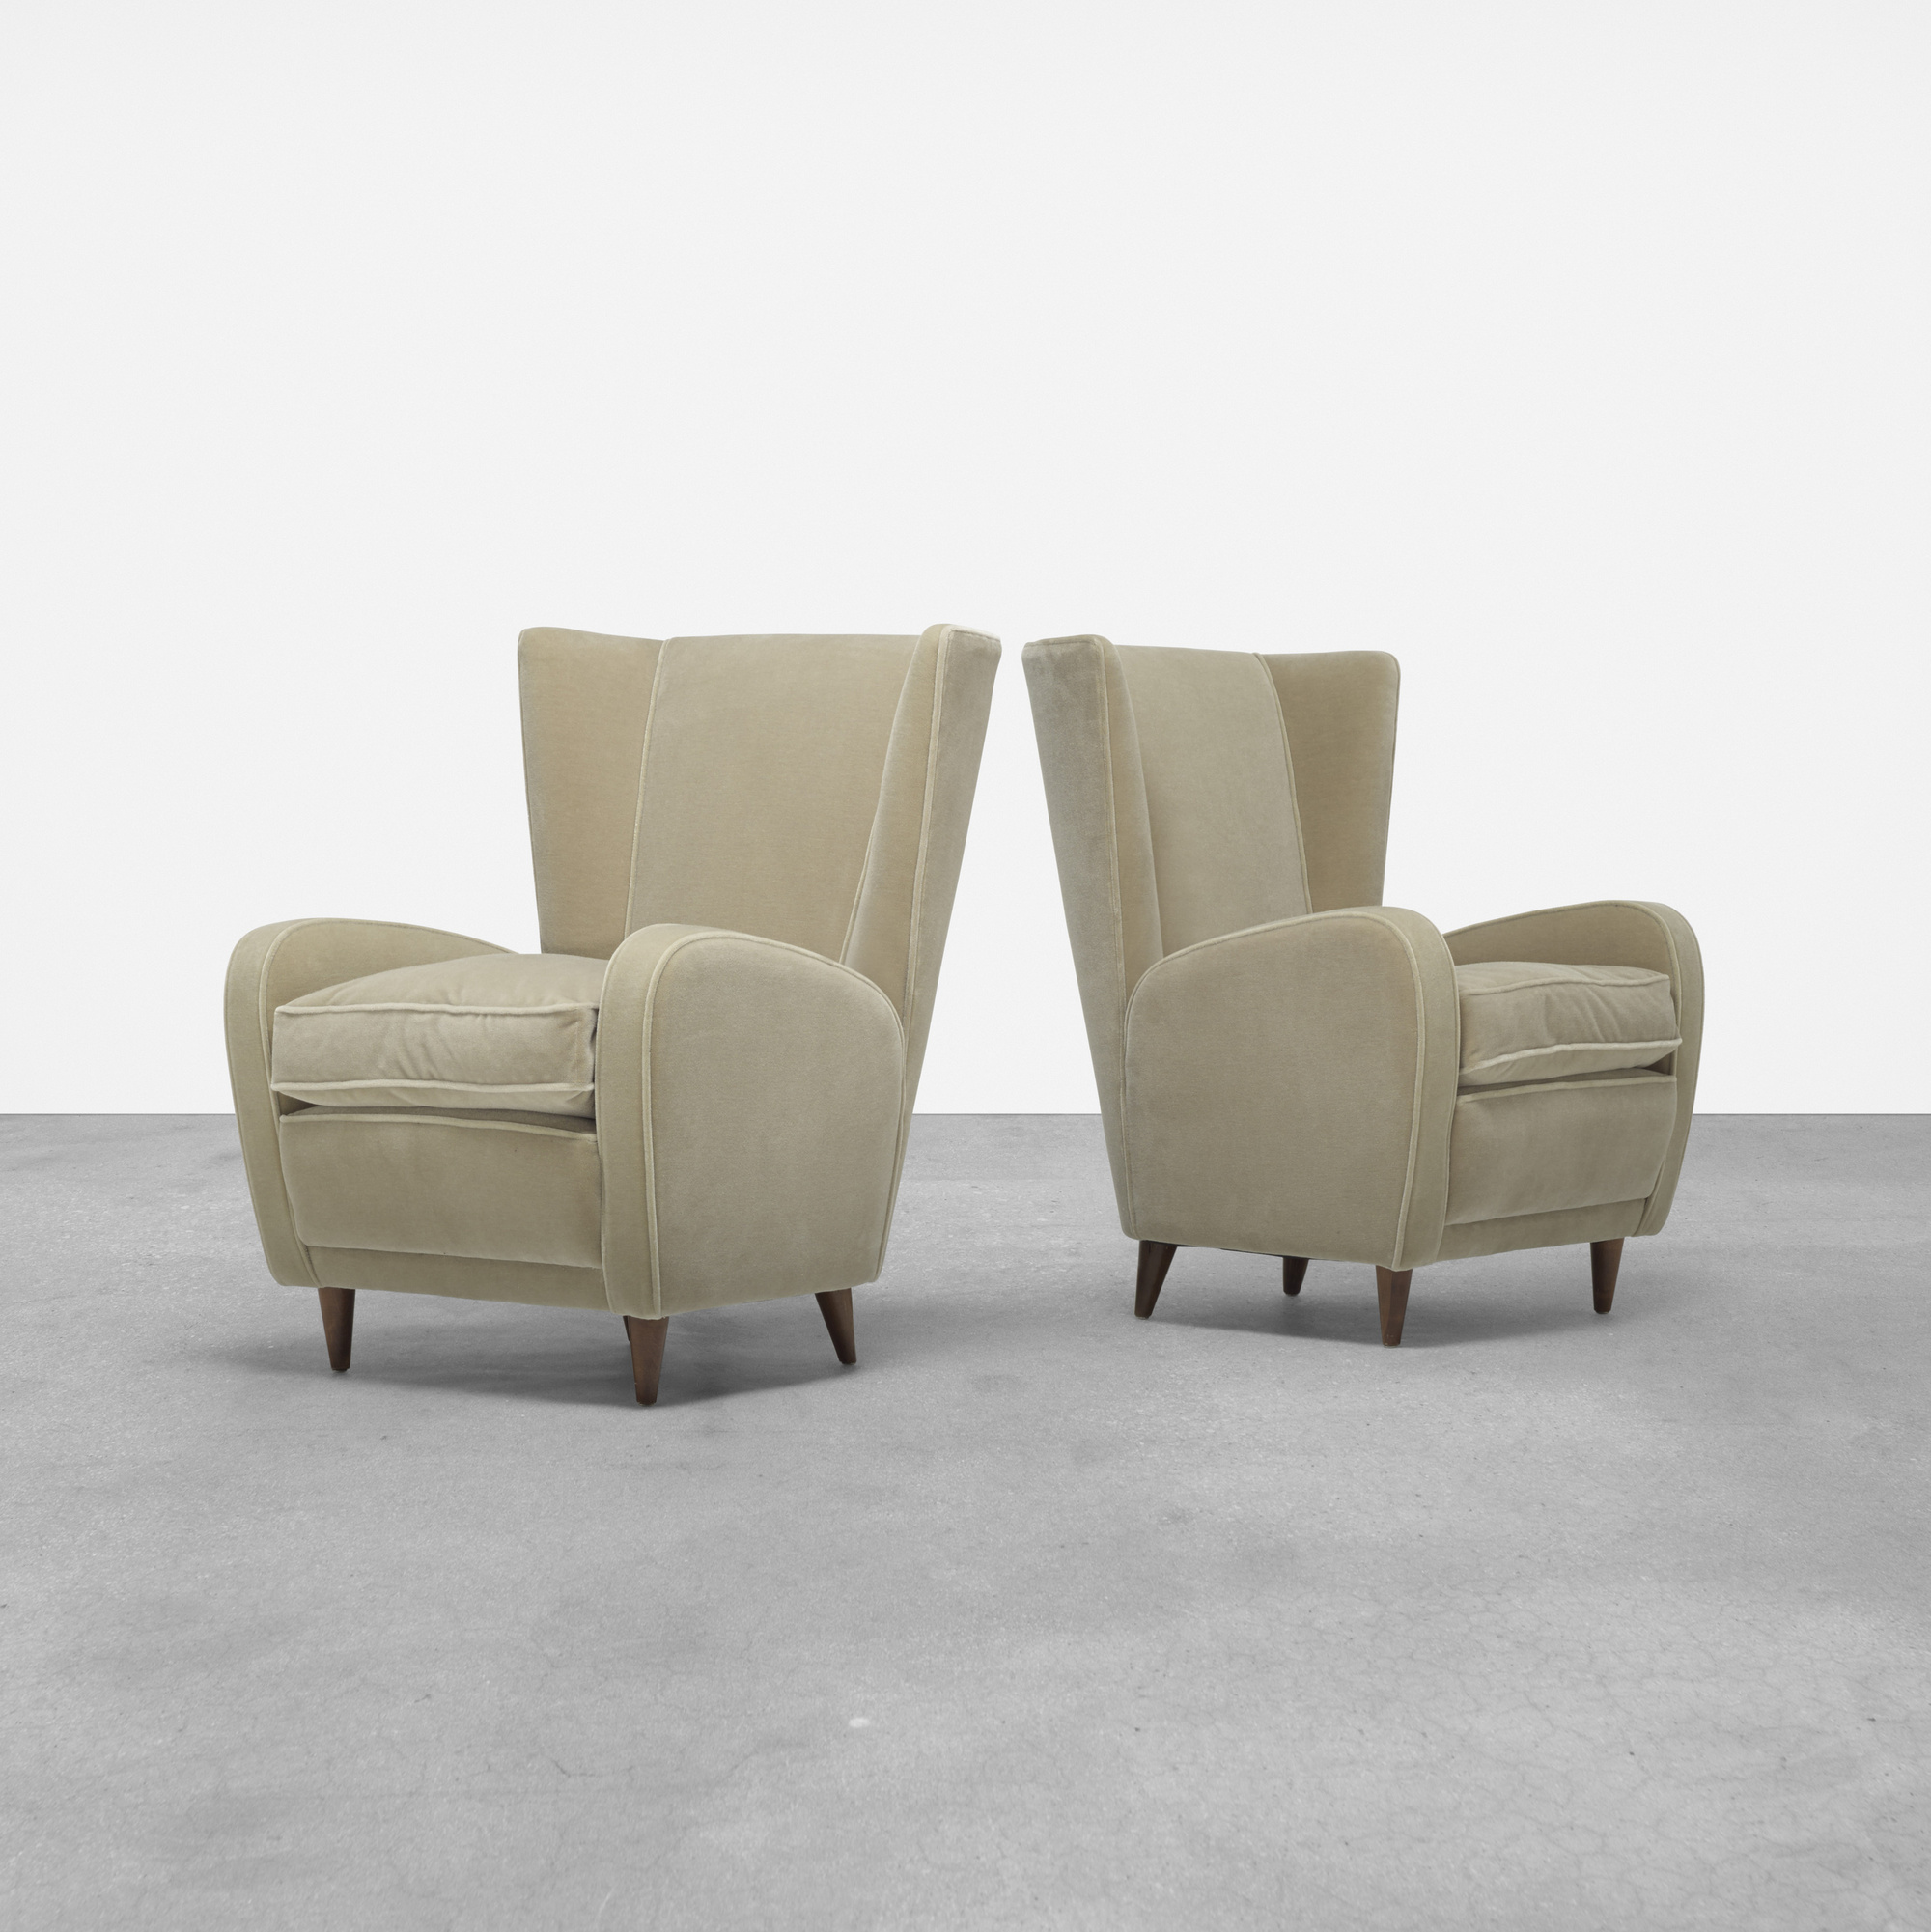 242: Paolo Buffa / pair of lounge chairs from Hotel Bristol, Merano (1 of 5)